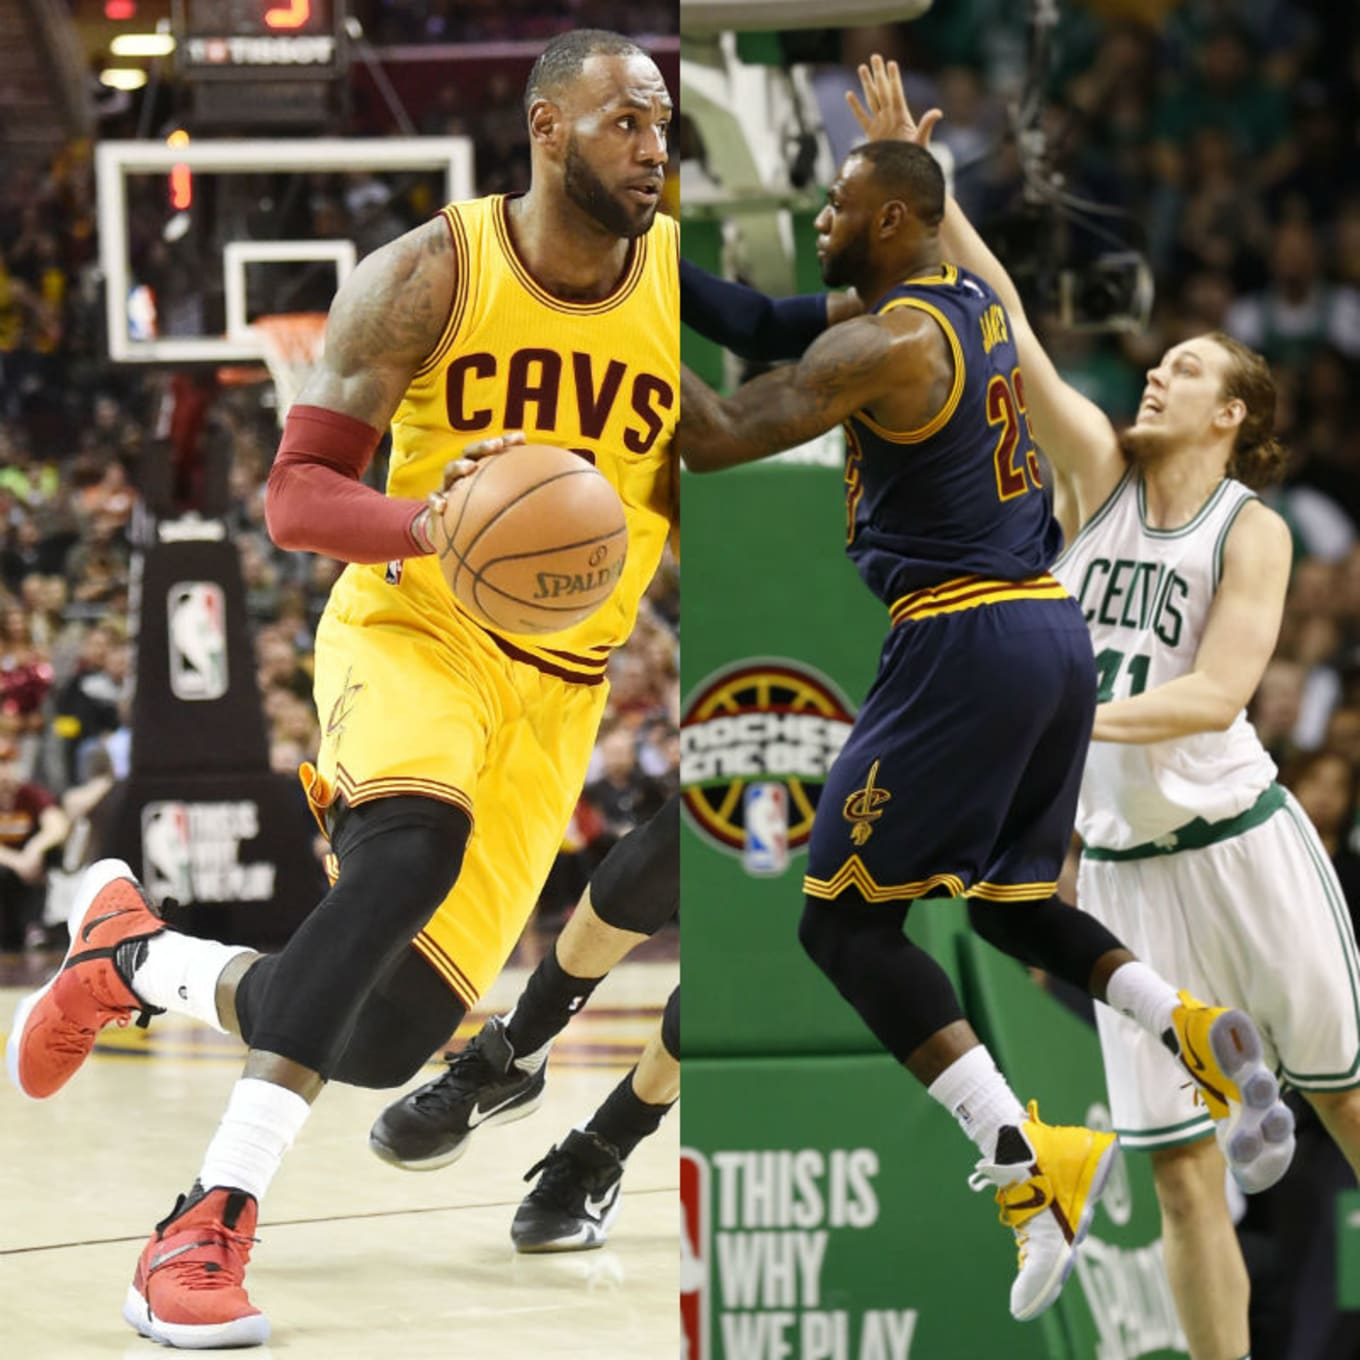 1ff84a7ca Images via Ken Blaze   Greg M. Cooper for USA Today Sports. Team  Cleveland  Cavaliers